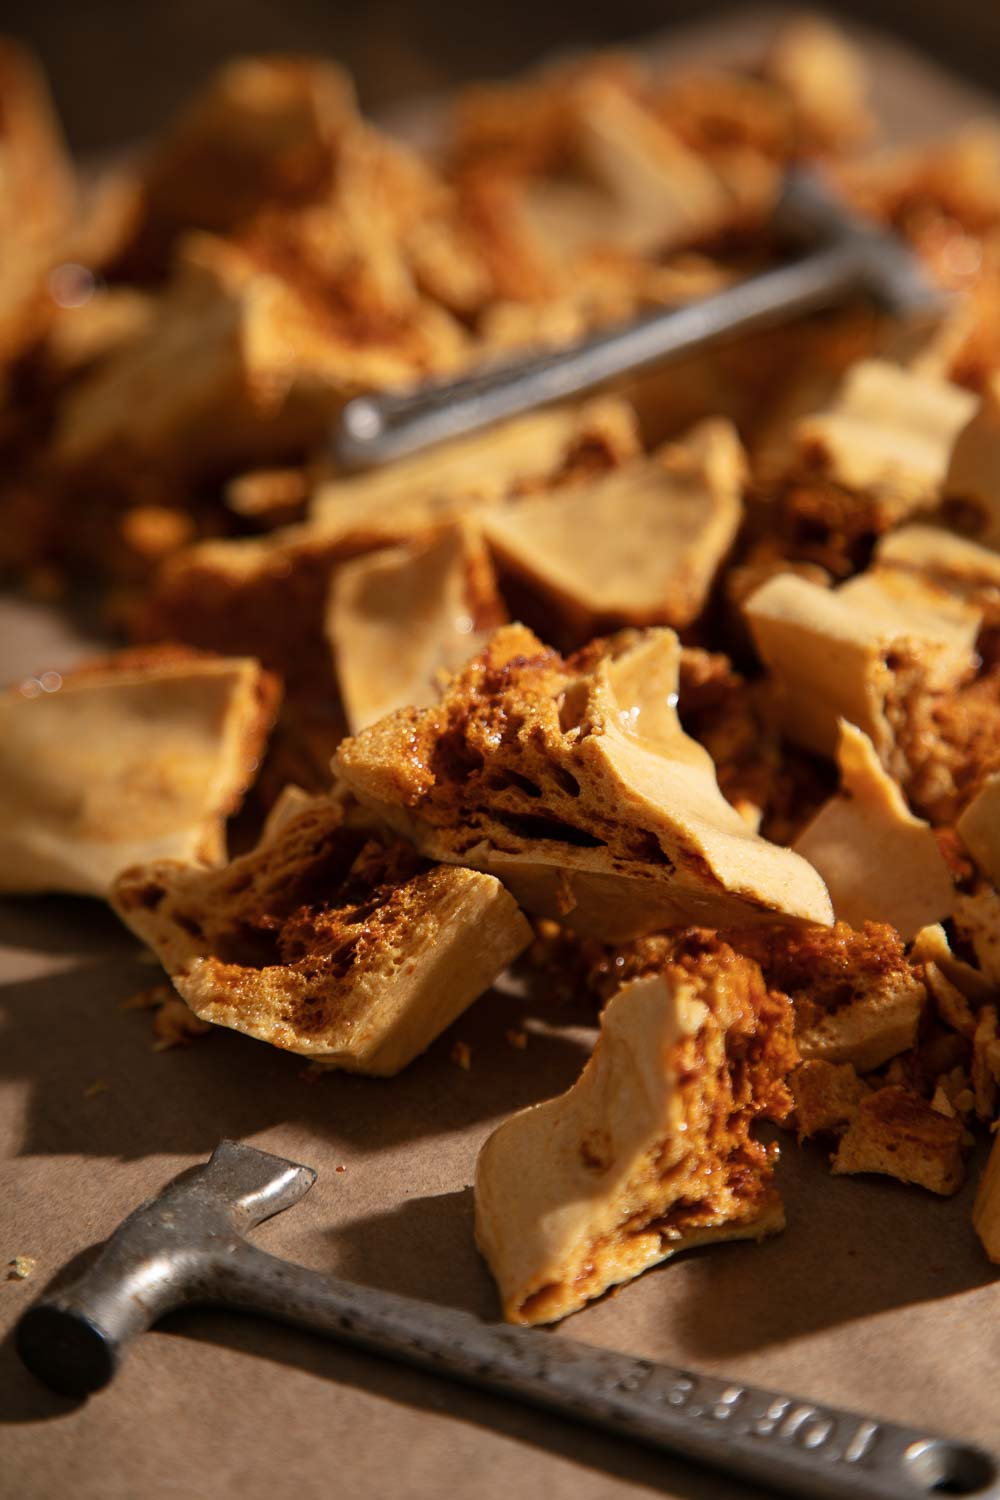 Honeycomb pieces with two toffee hammers.